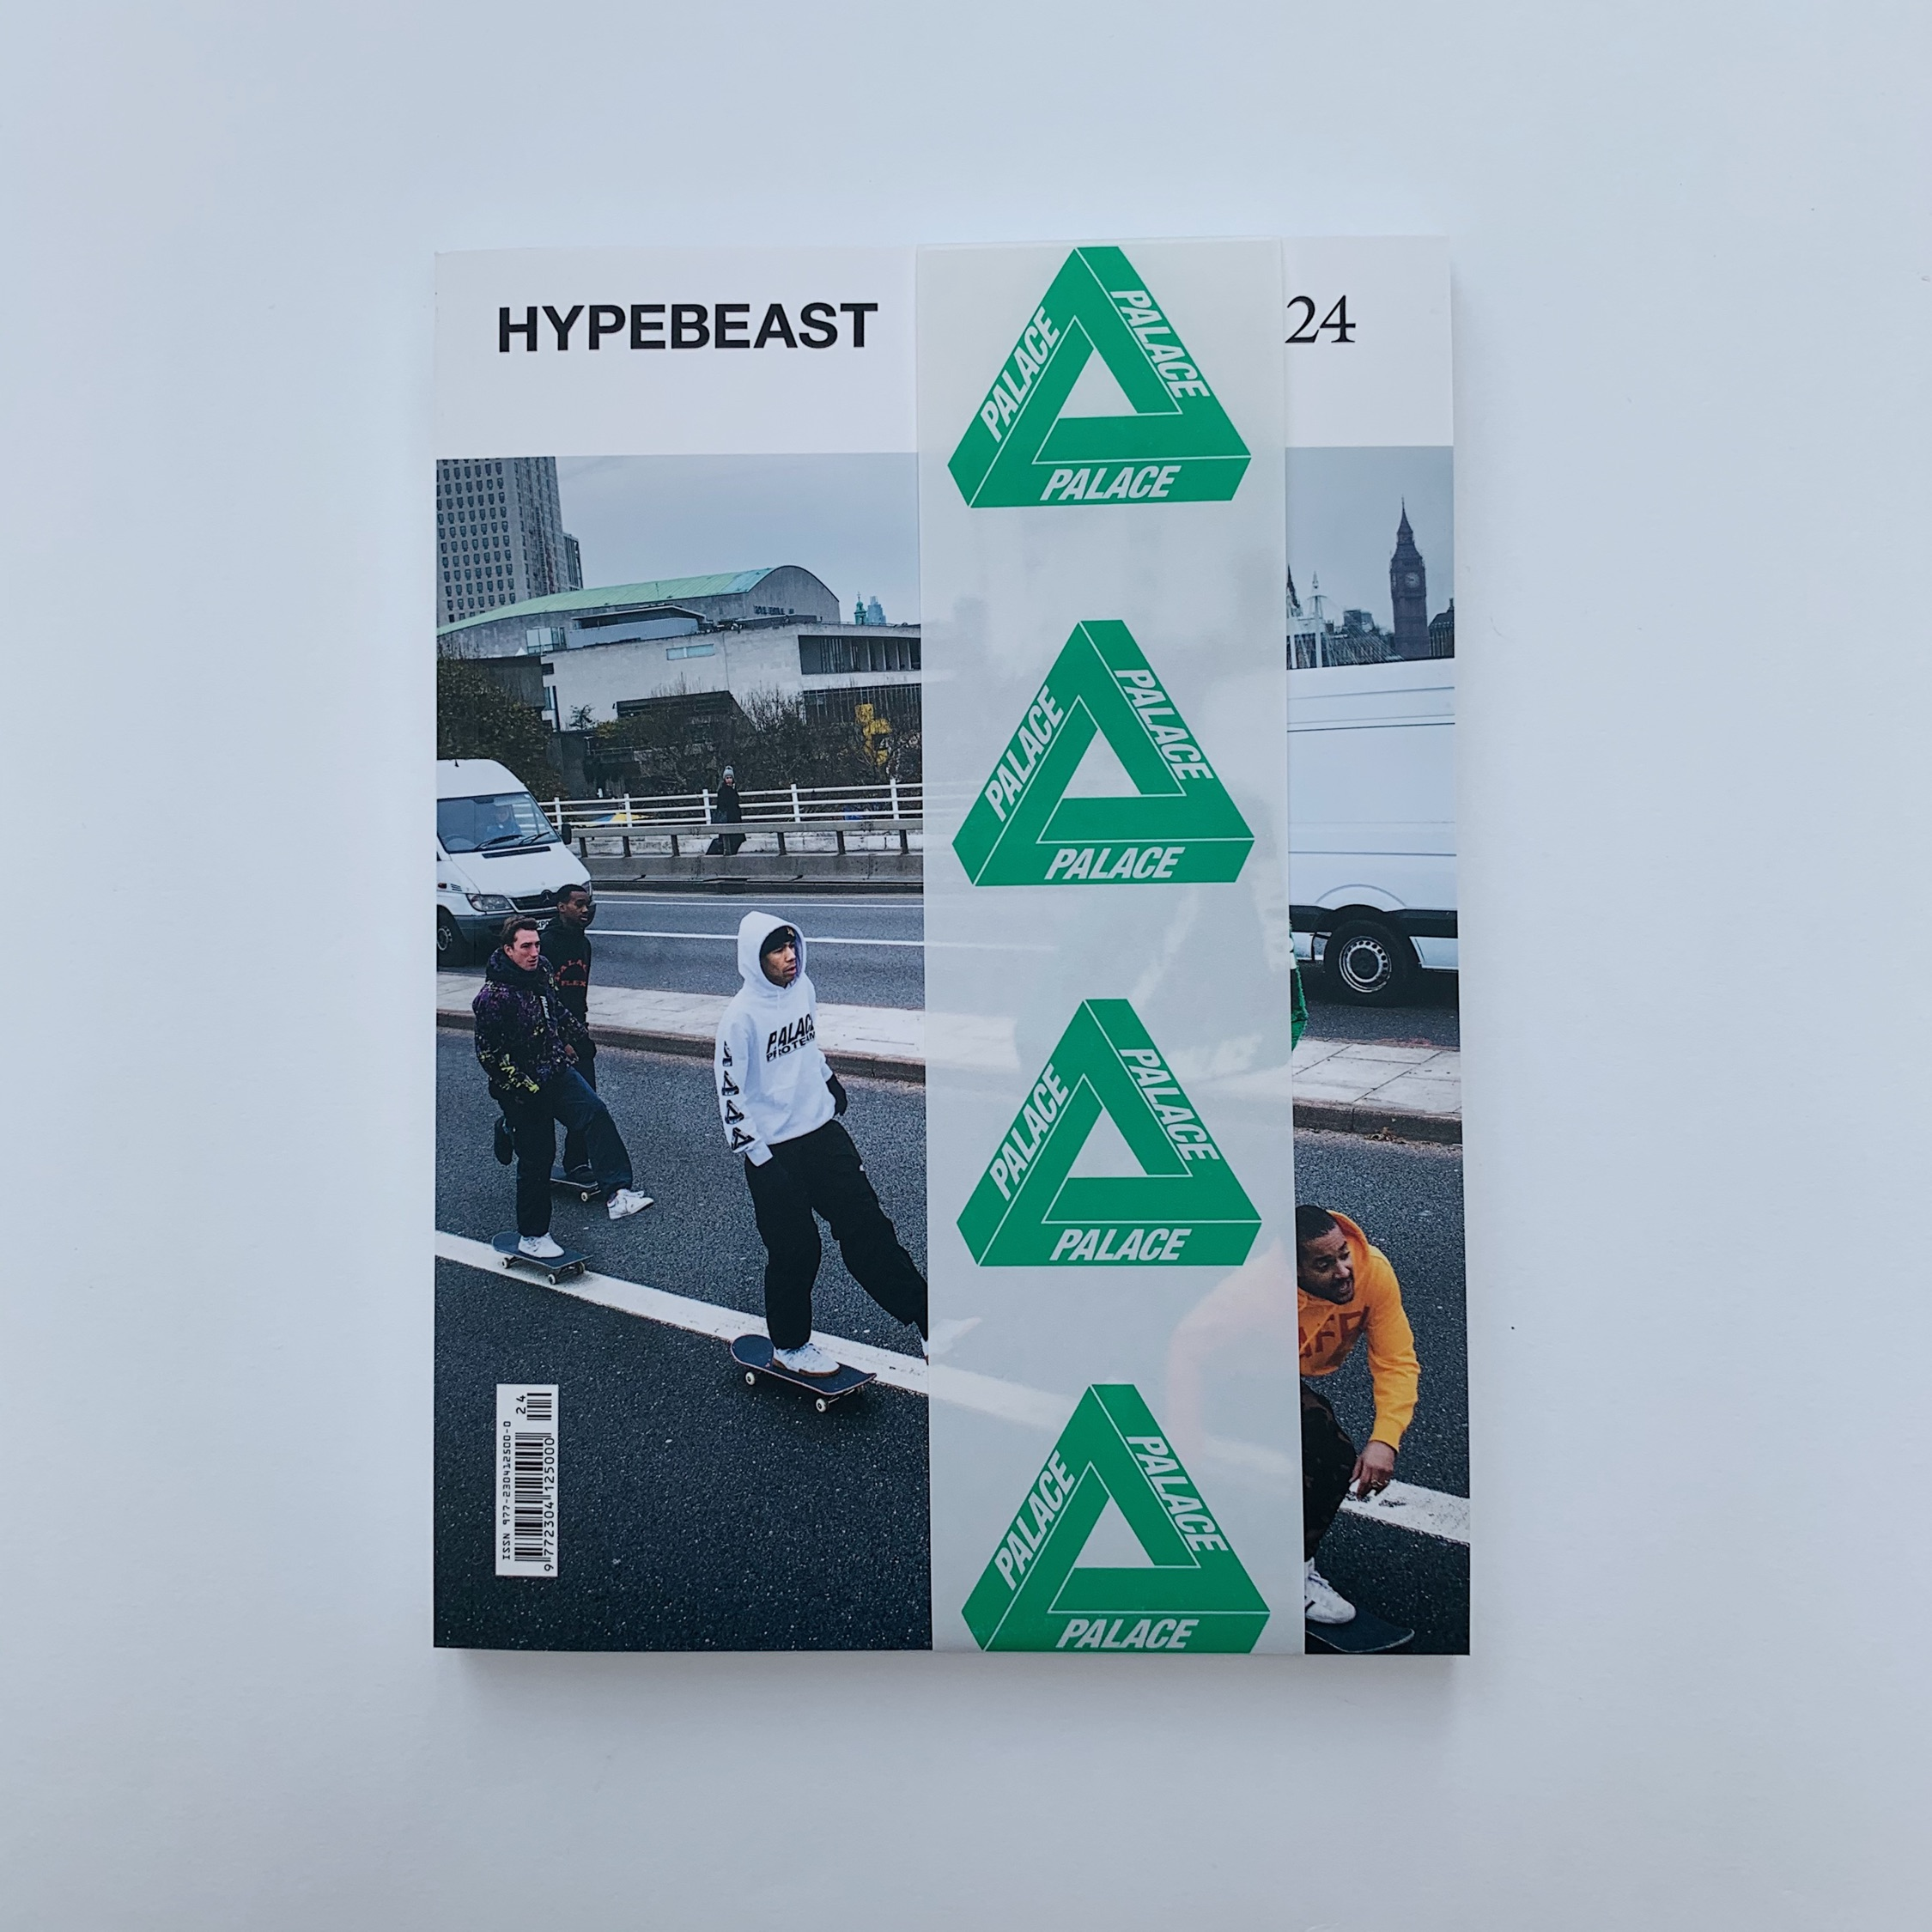 Hypebeast Magazine Issue 24 Palace | 250 Reviews